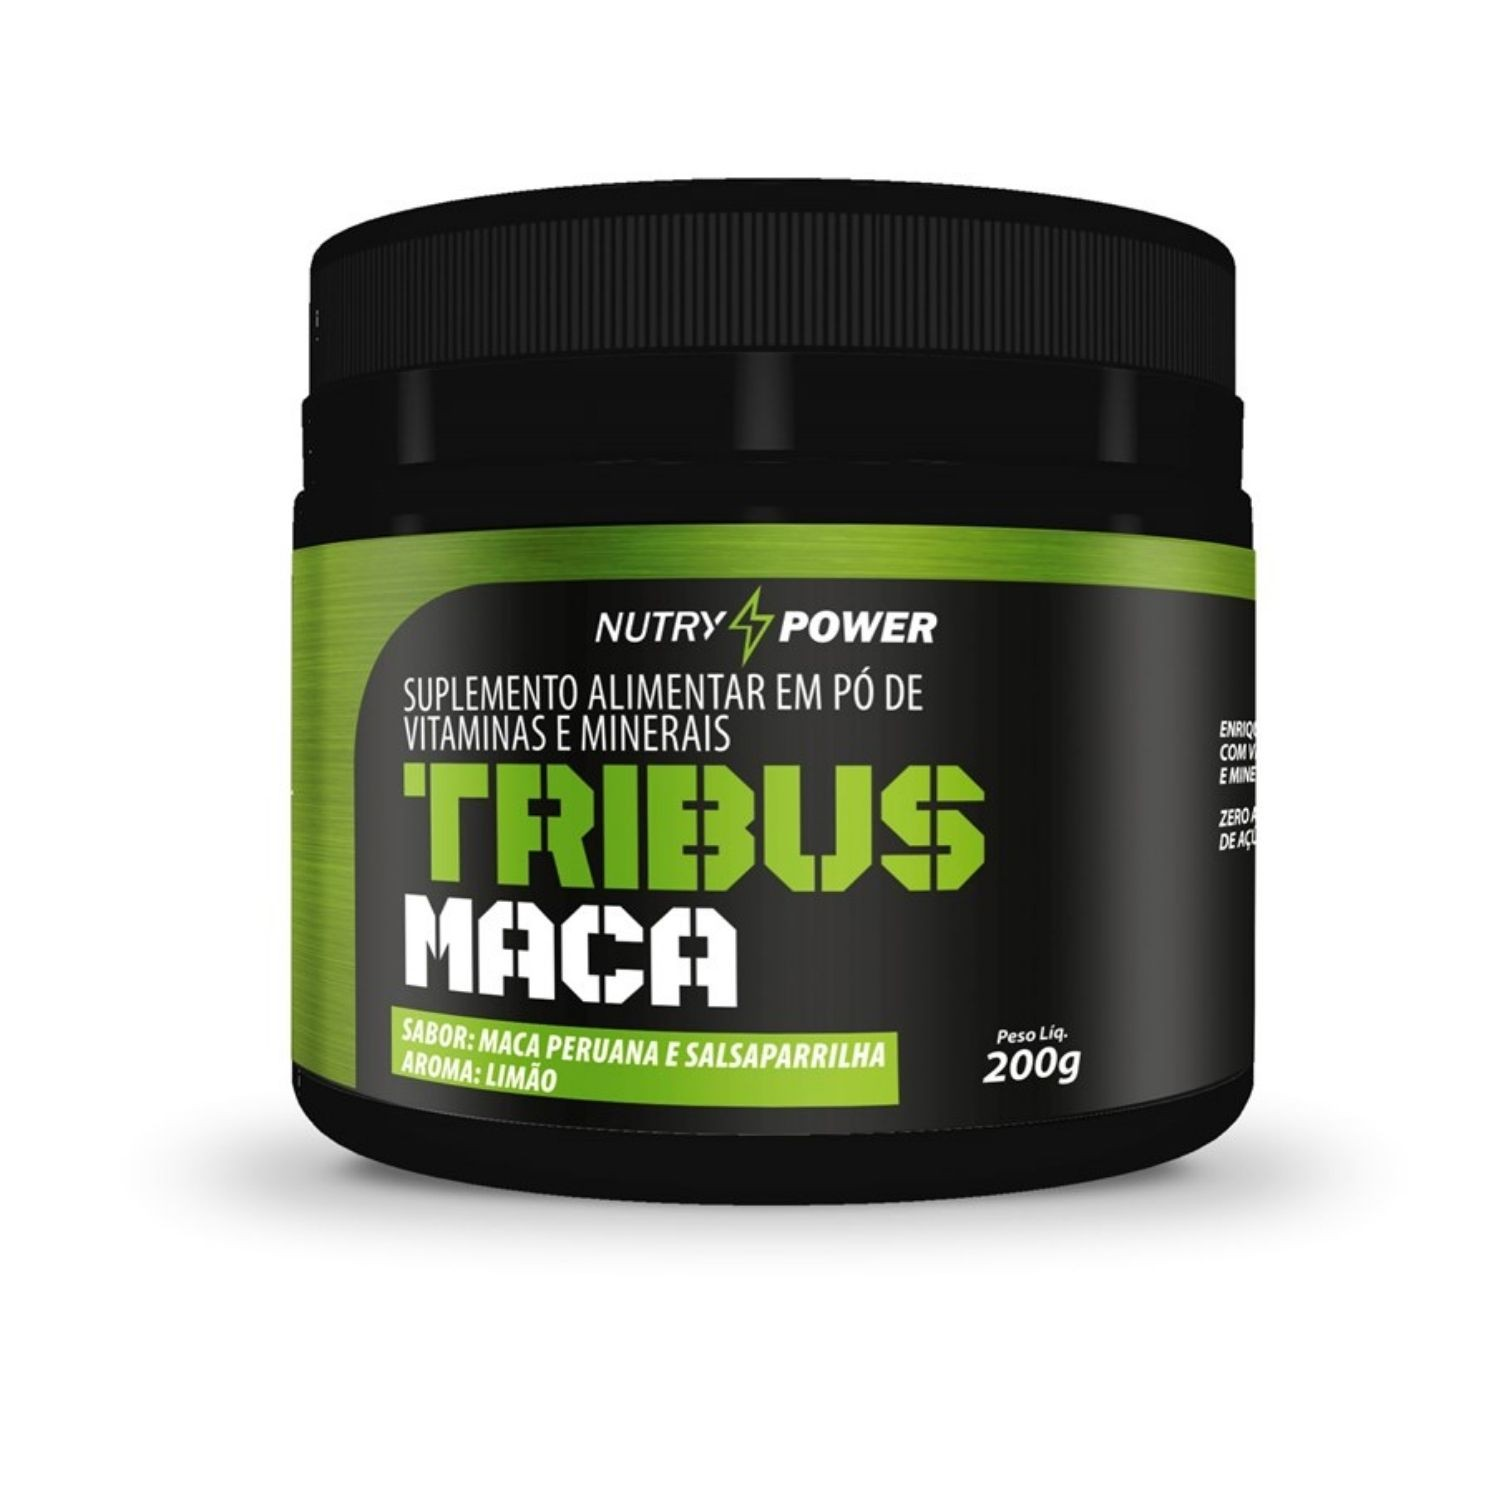 TribusMaca 200g Nutry Power